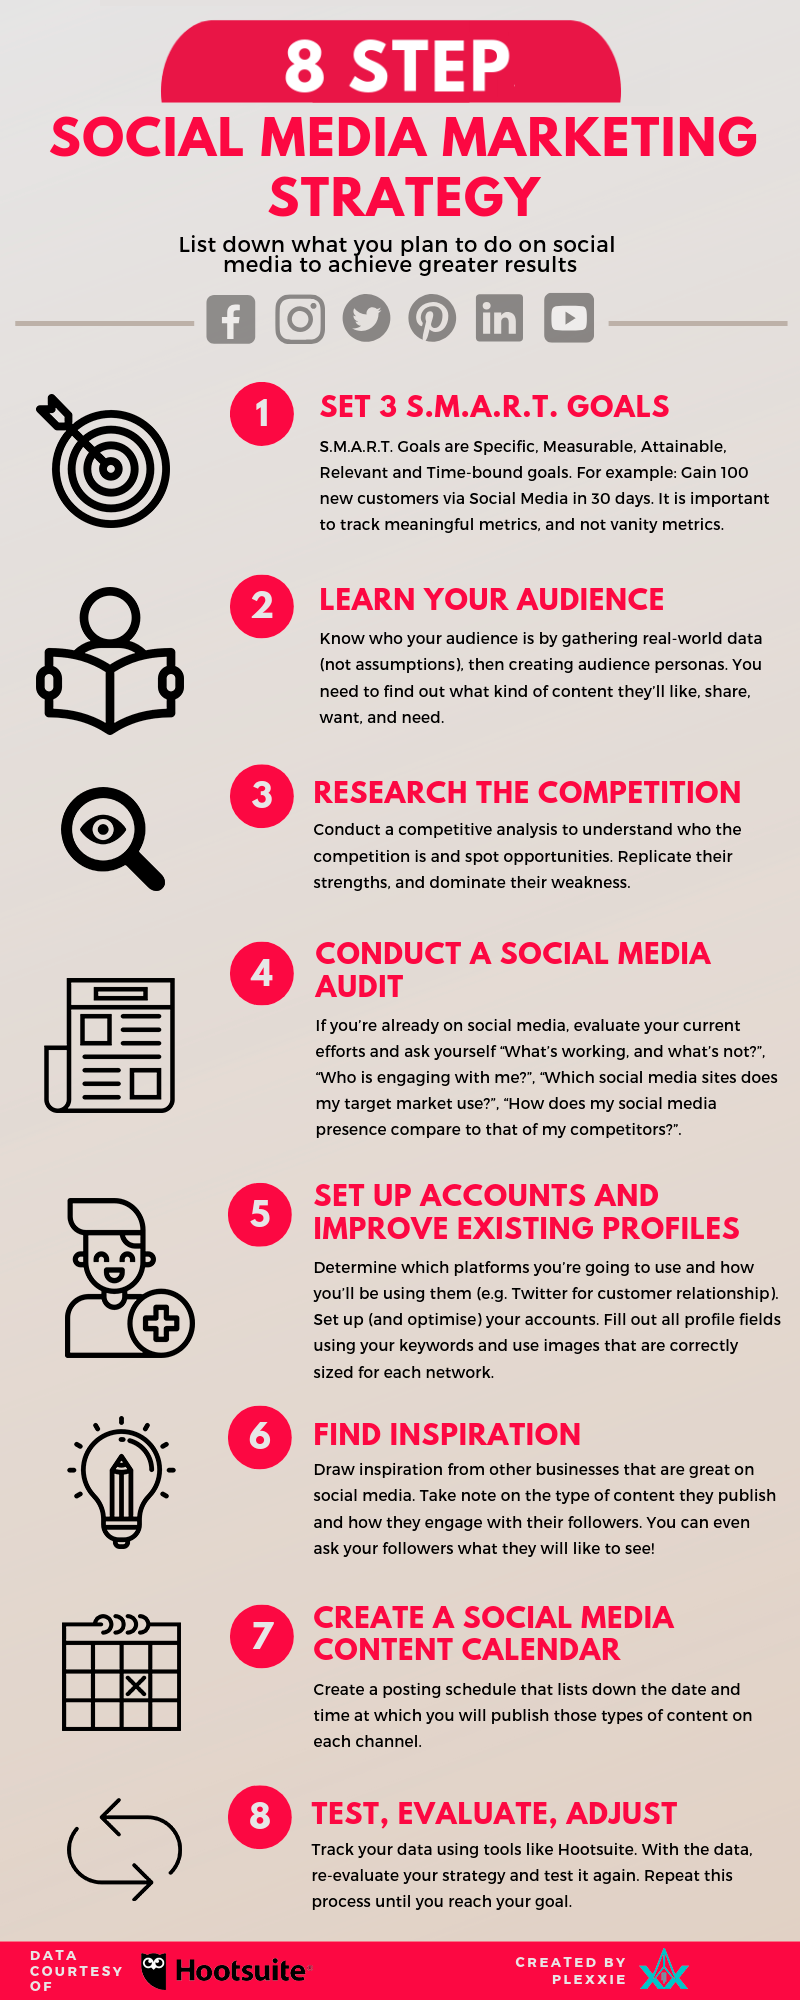 Infographic outlines key steps in developing a social media marketing plan